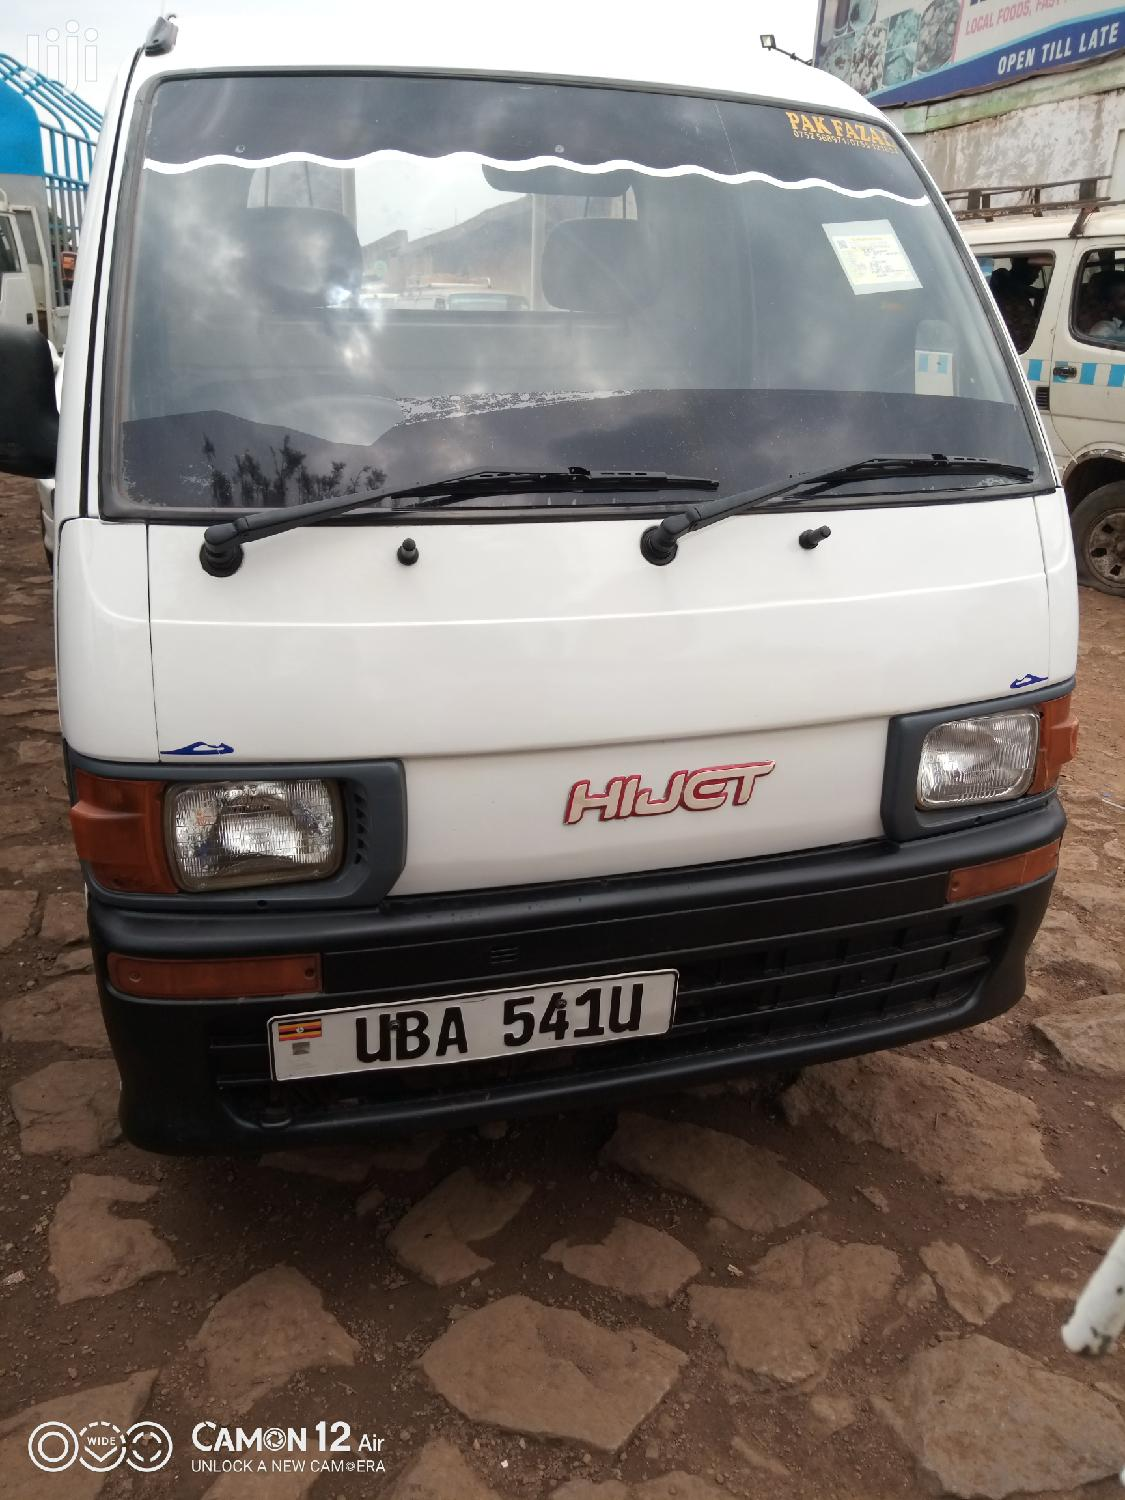 Hijet So Nice Car